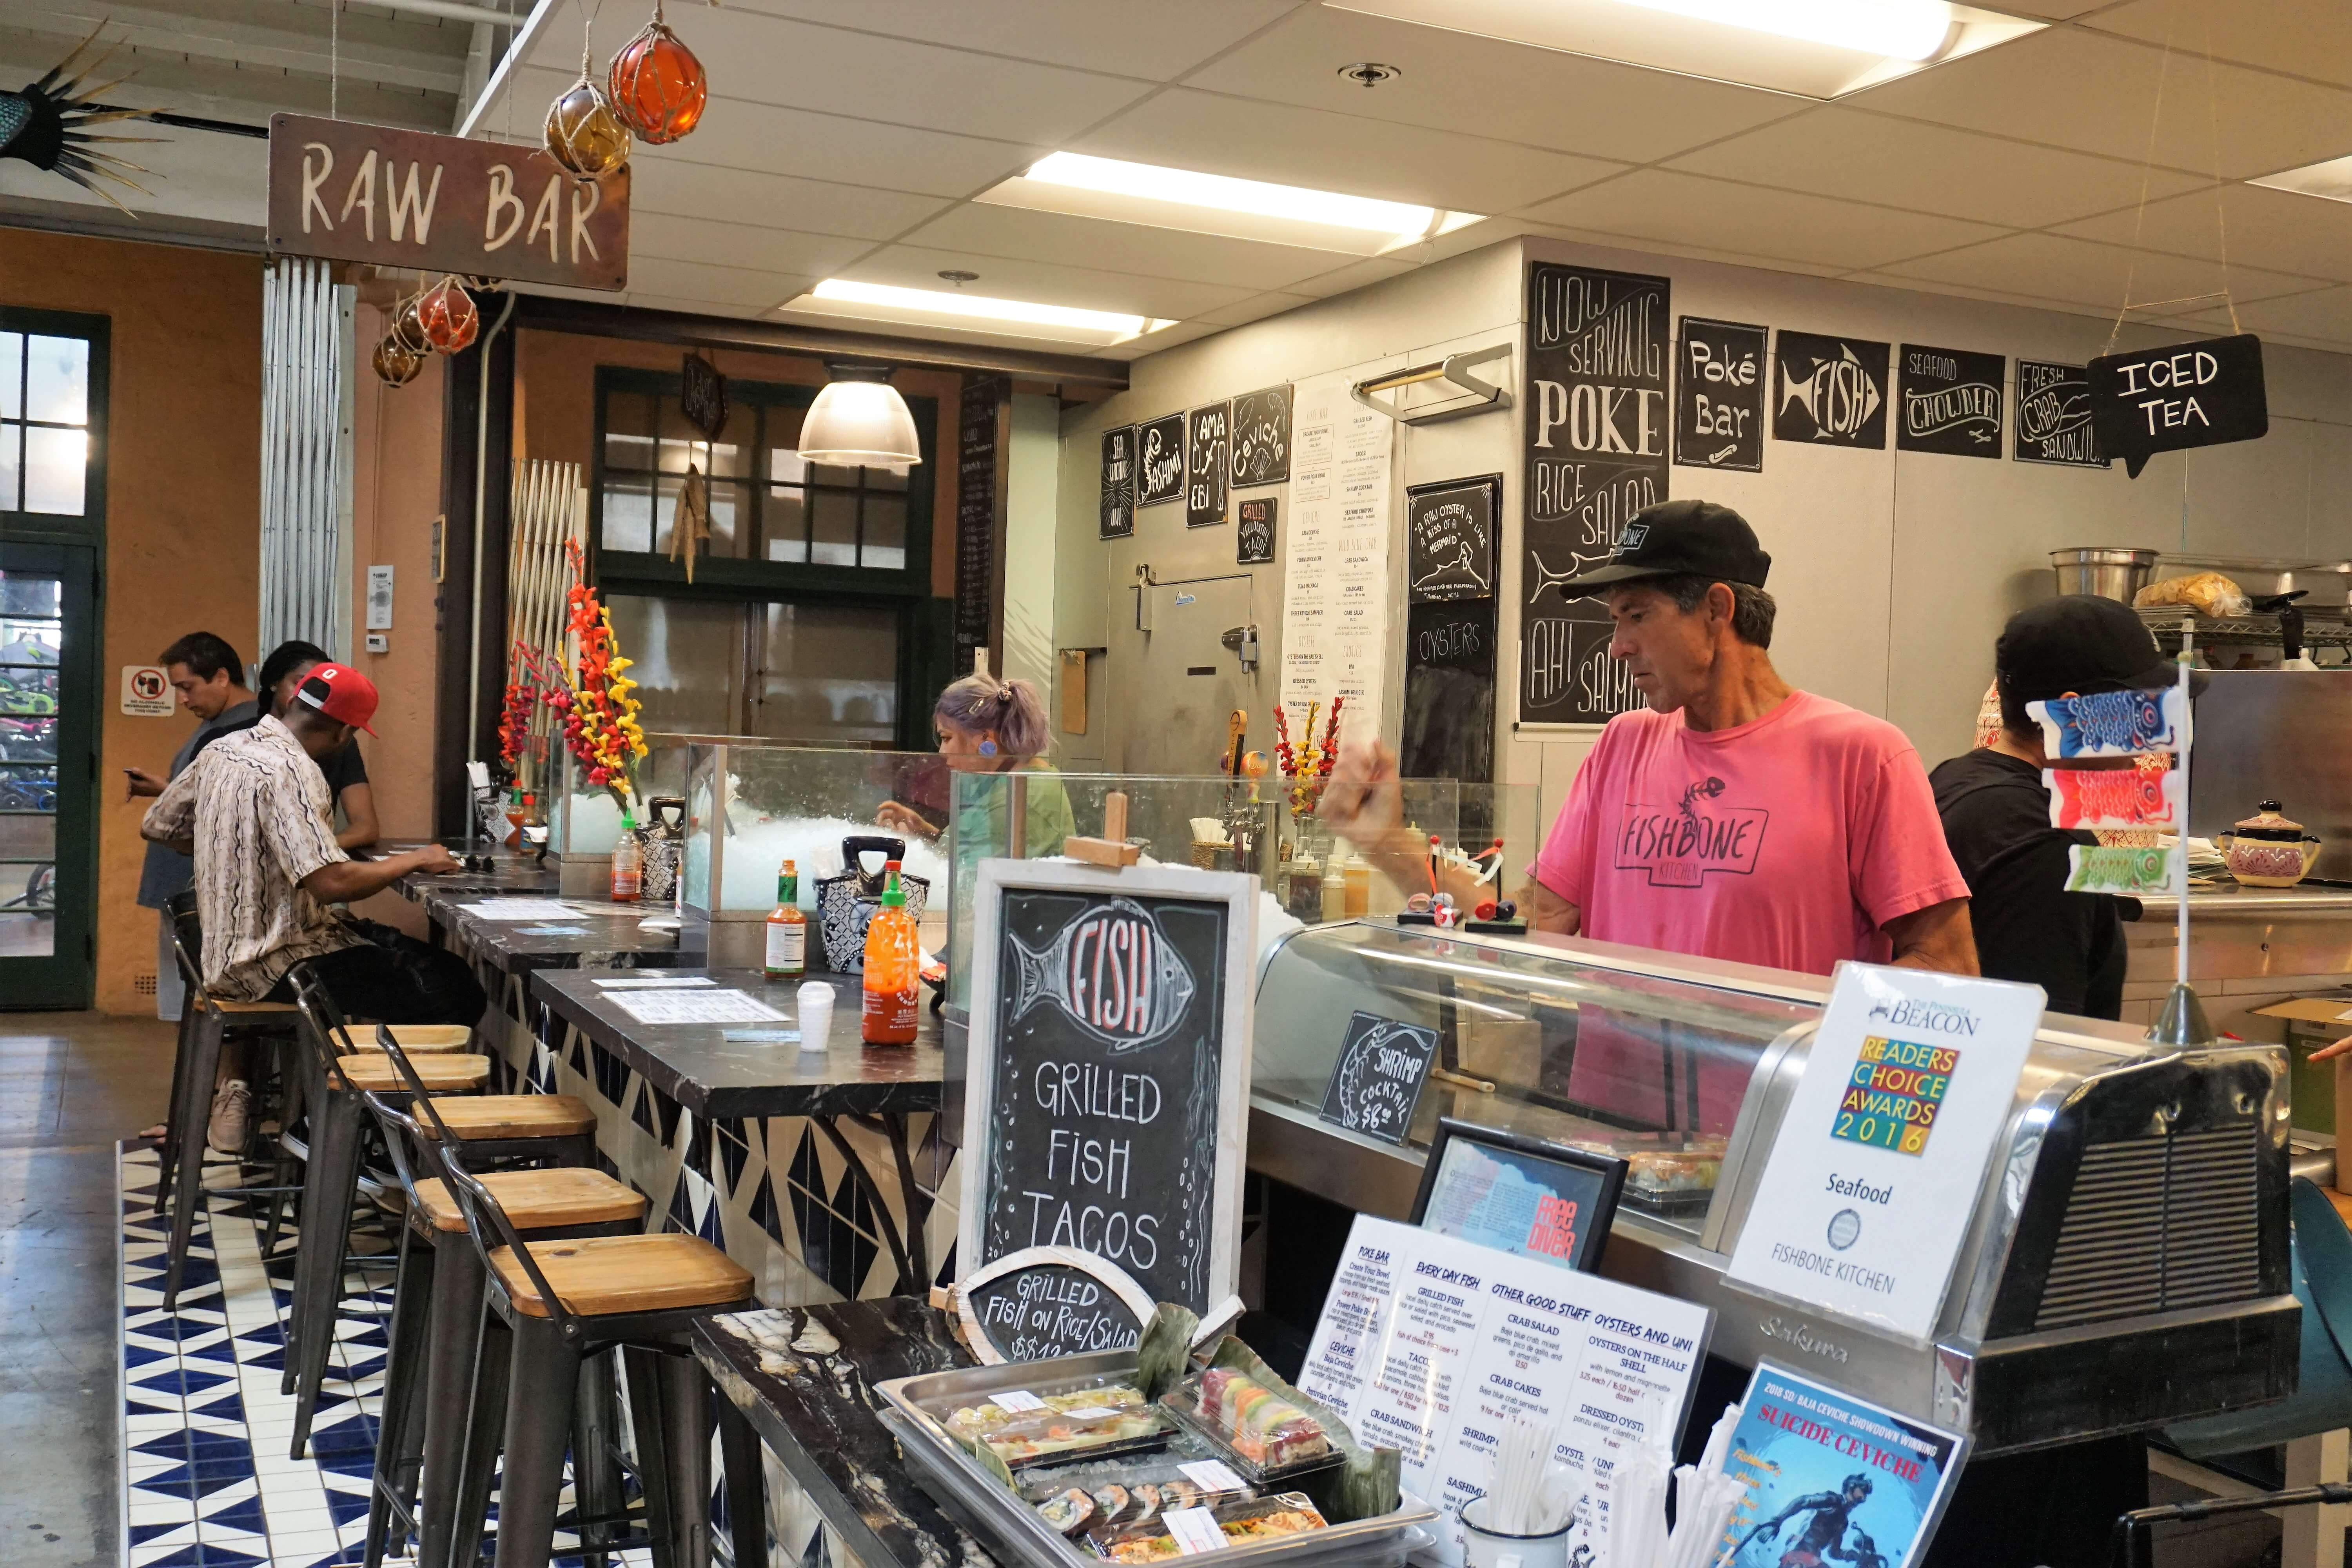 Inside Liberty Public Market, a great place to find all sorts of delicious food